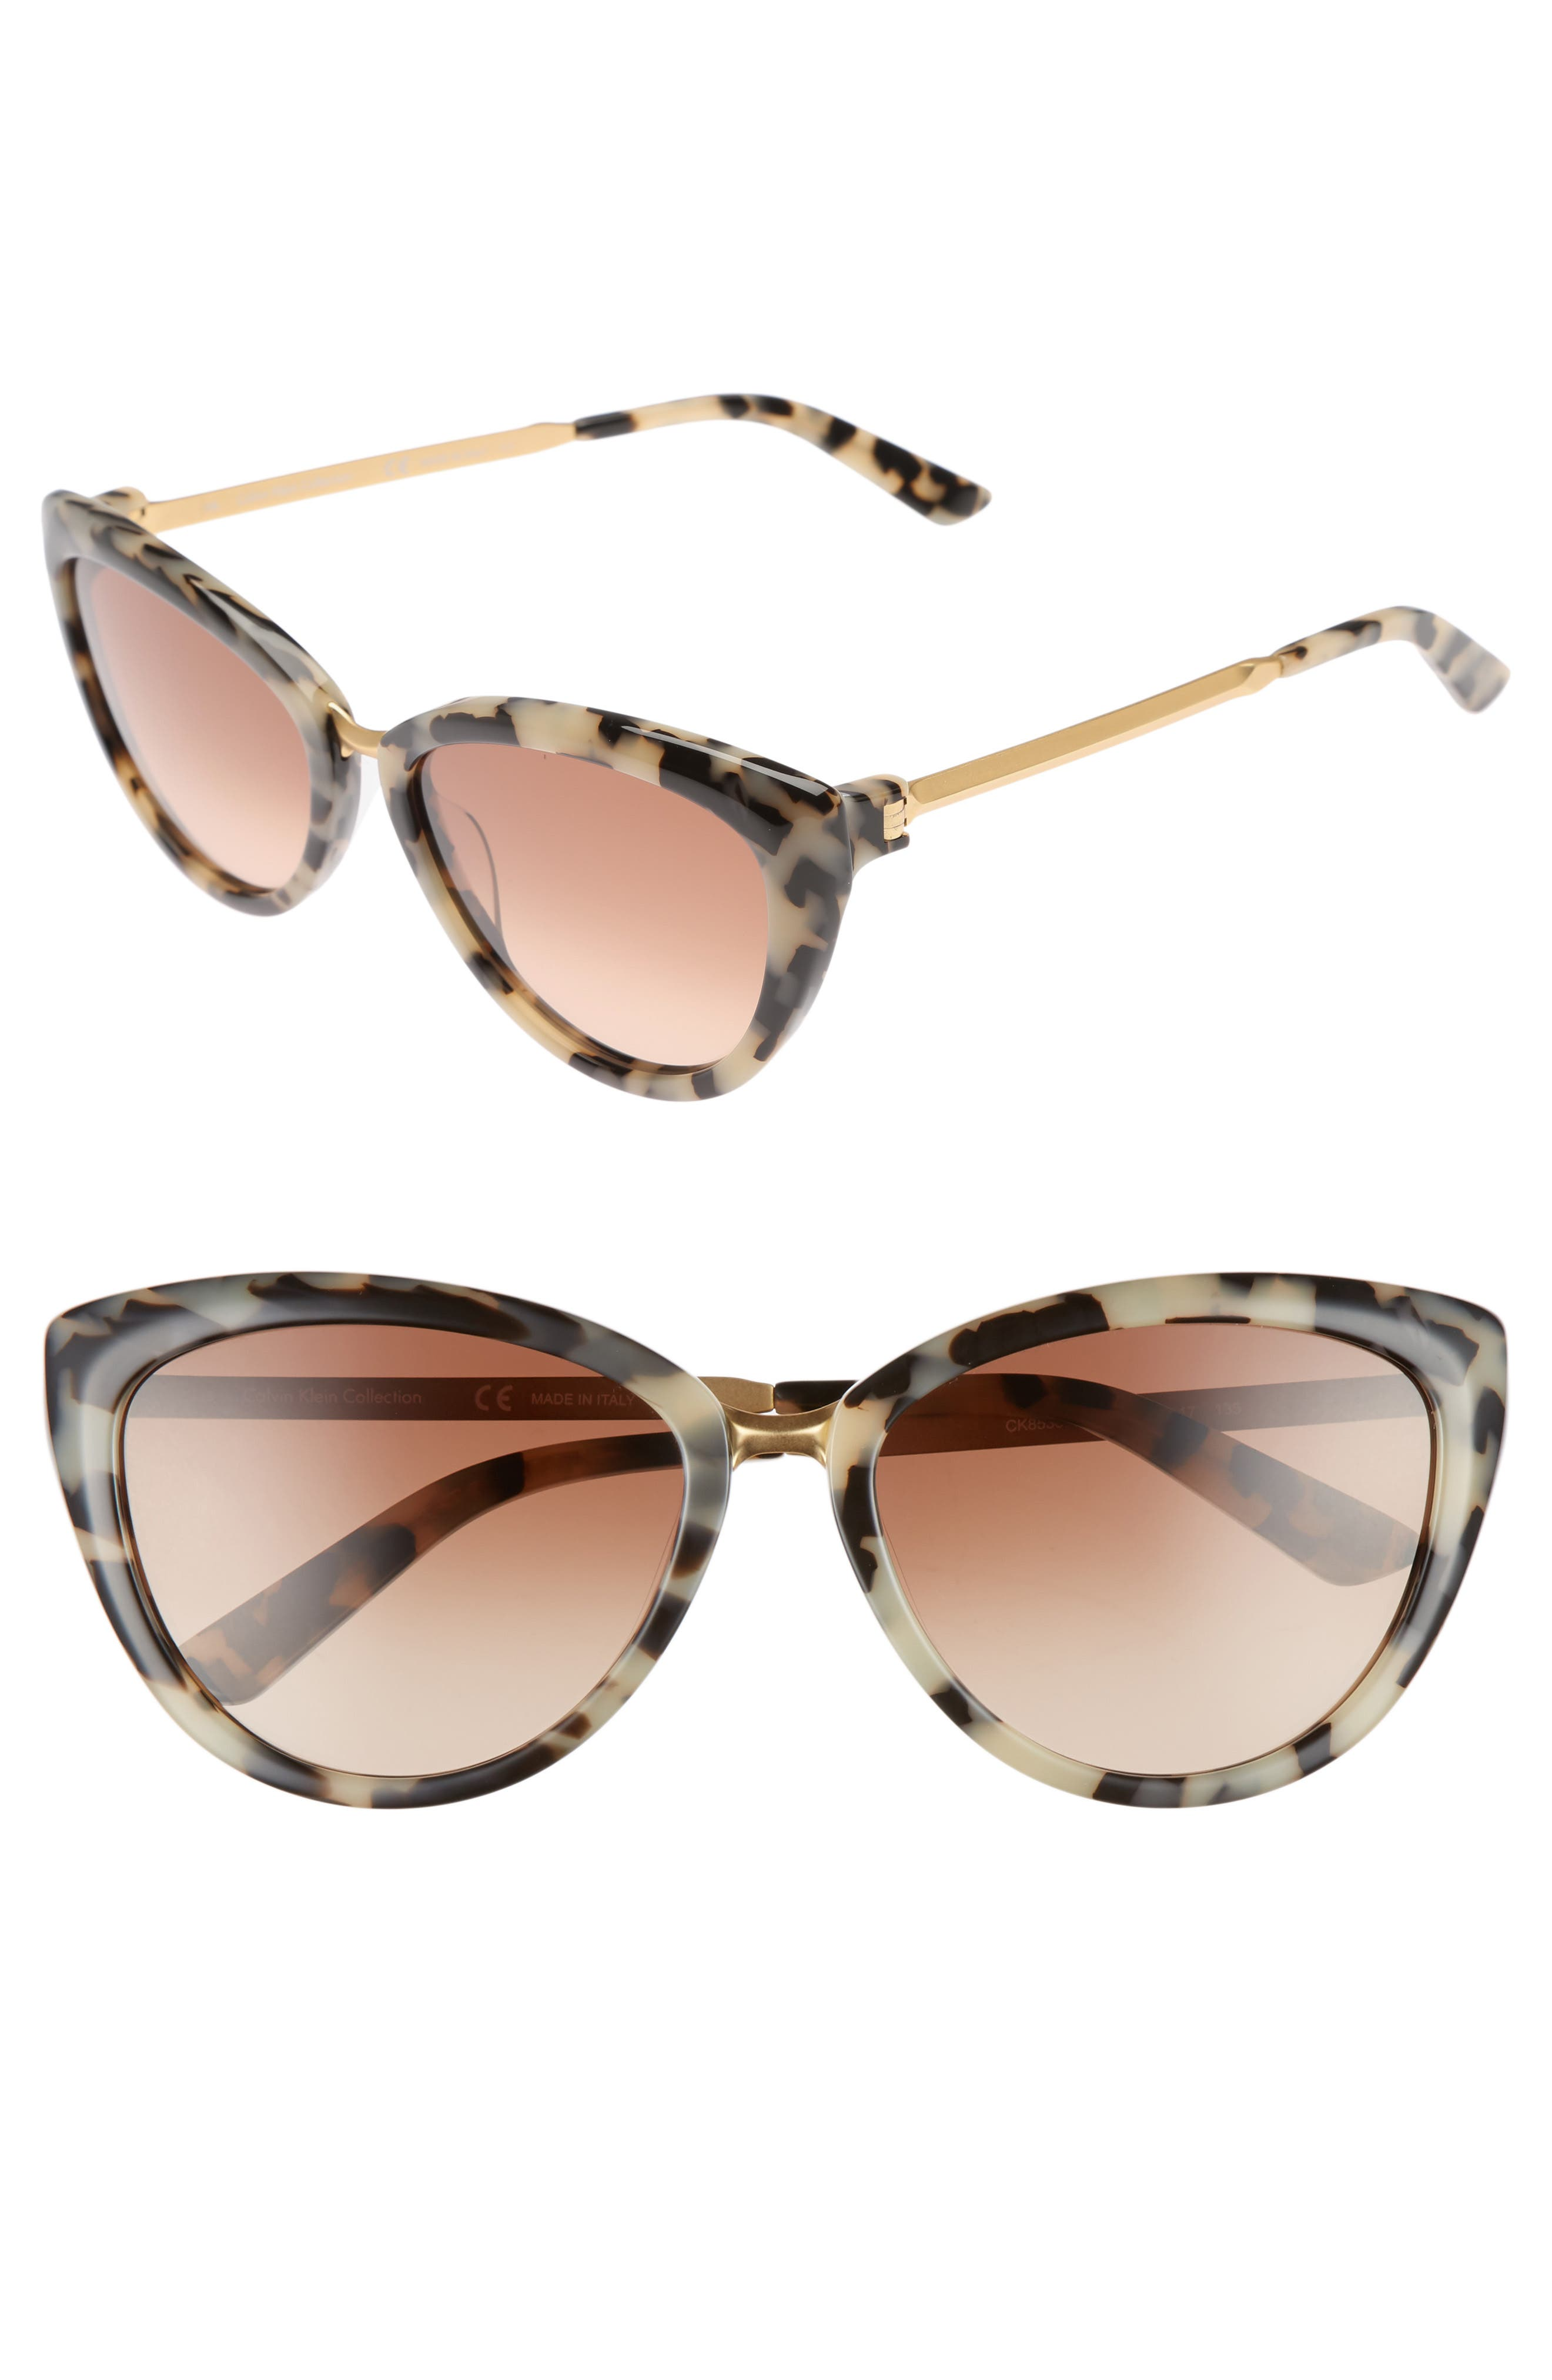 Alternate Image 1 Selected - CALVIN KLEIN 56mm Cat Eye Sunglasses